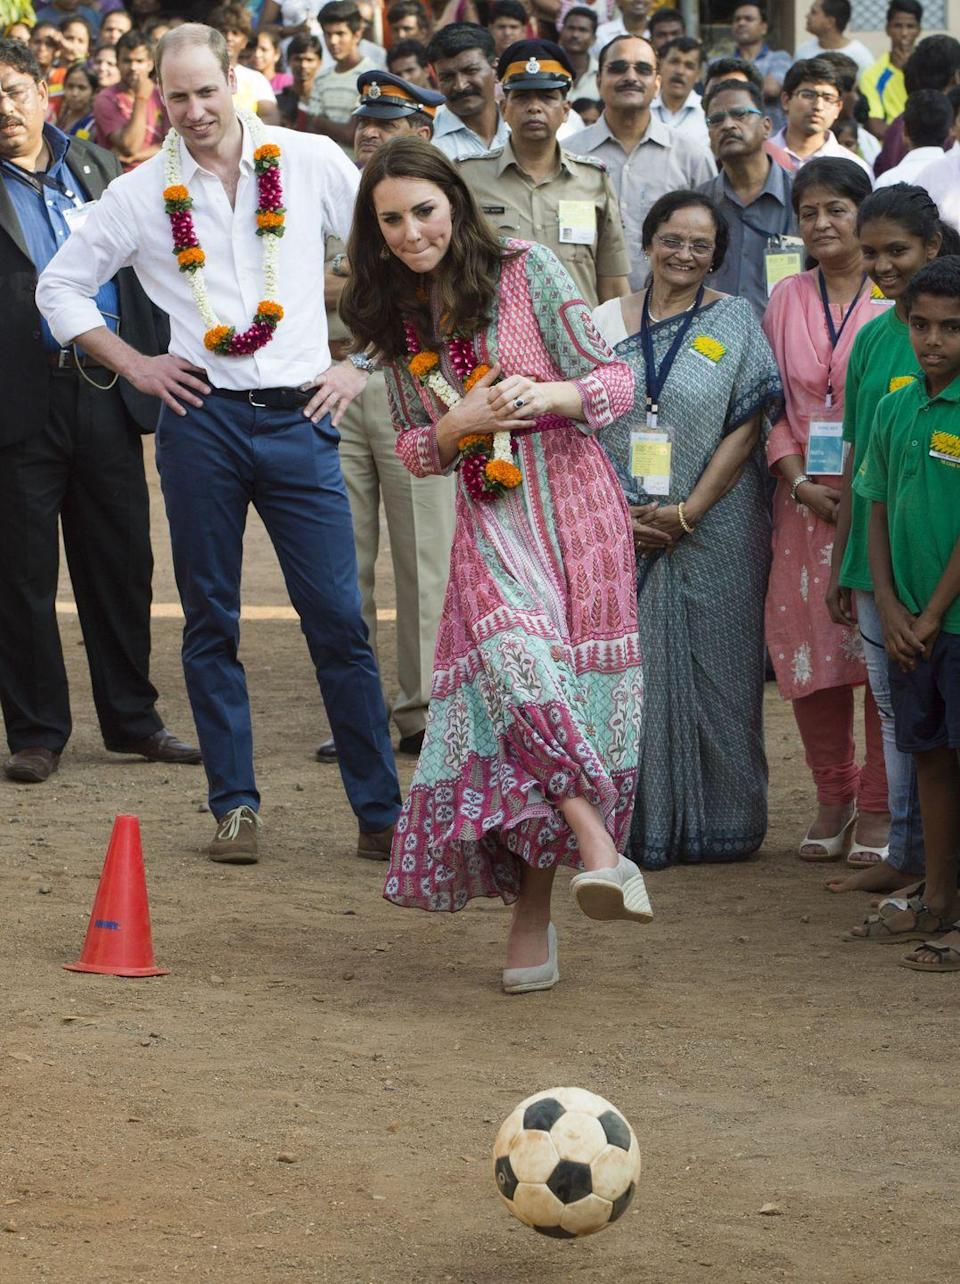 <p>While not exactly wearing proper sporting attire, Kate did not hesitate to join a soccer game on her royal visit to India.</p>